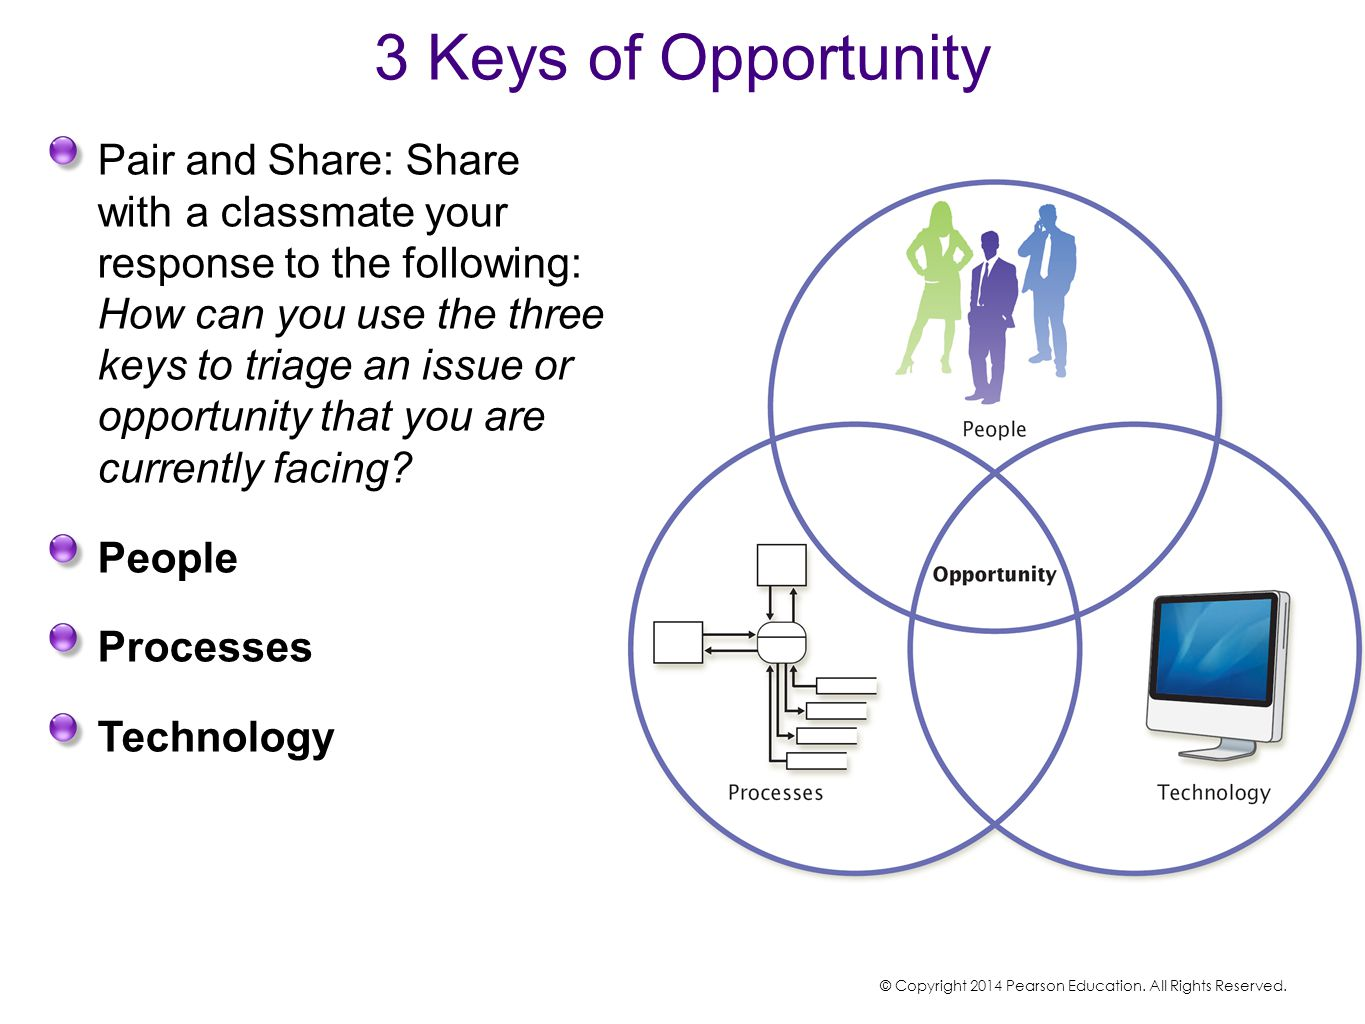 3 Keys of Opportunity